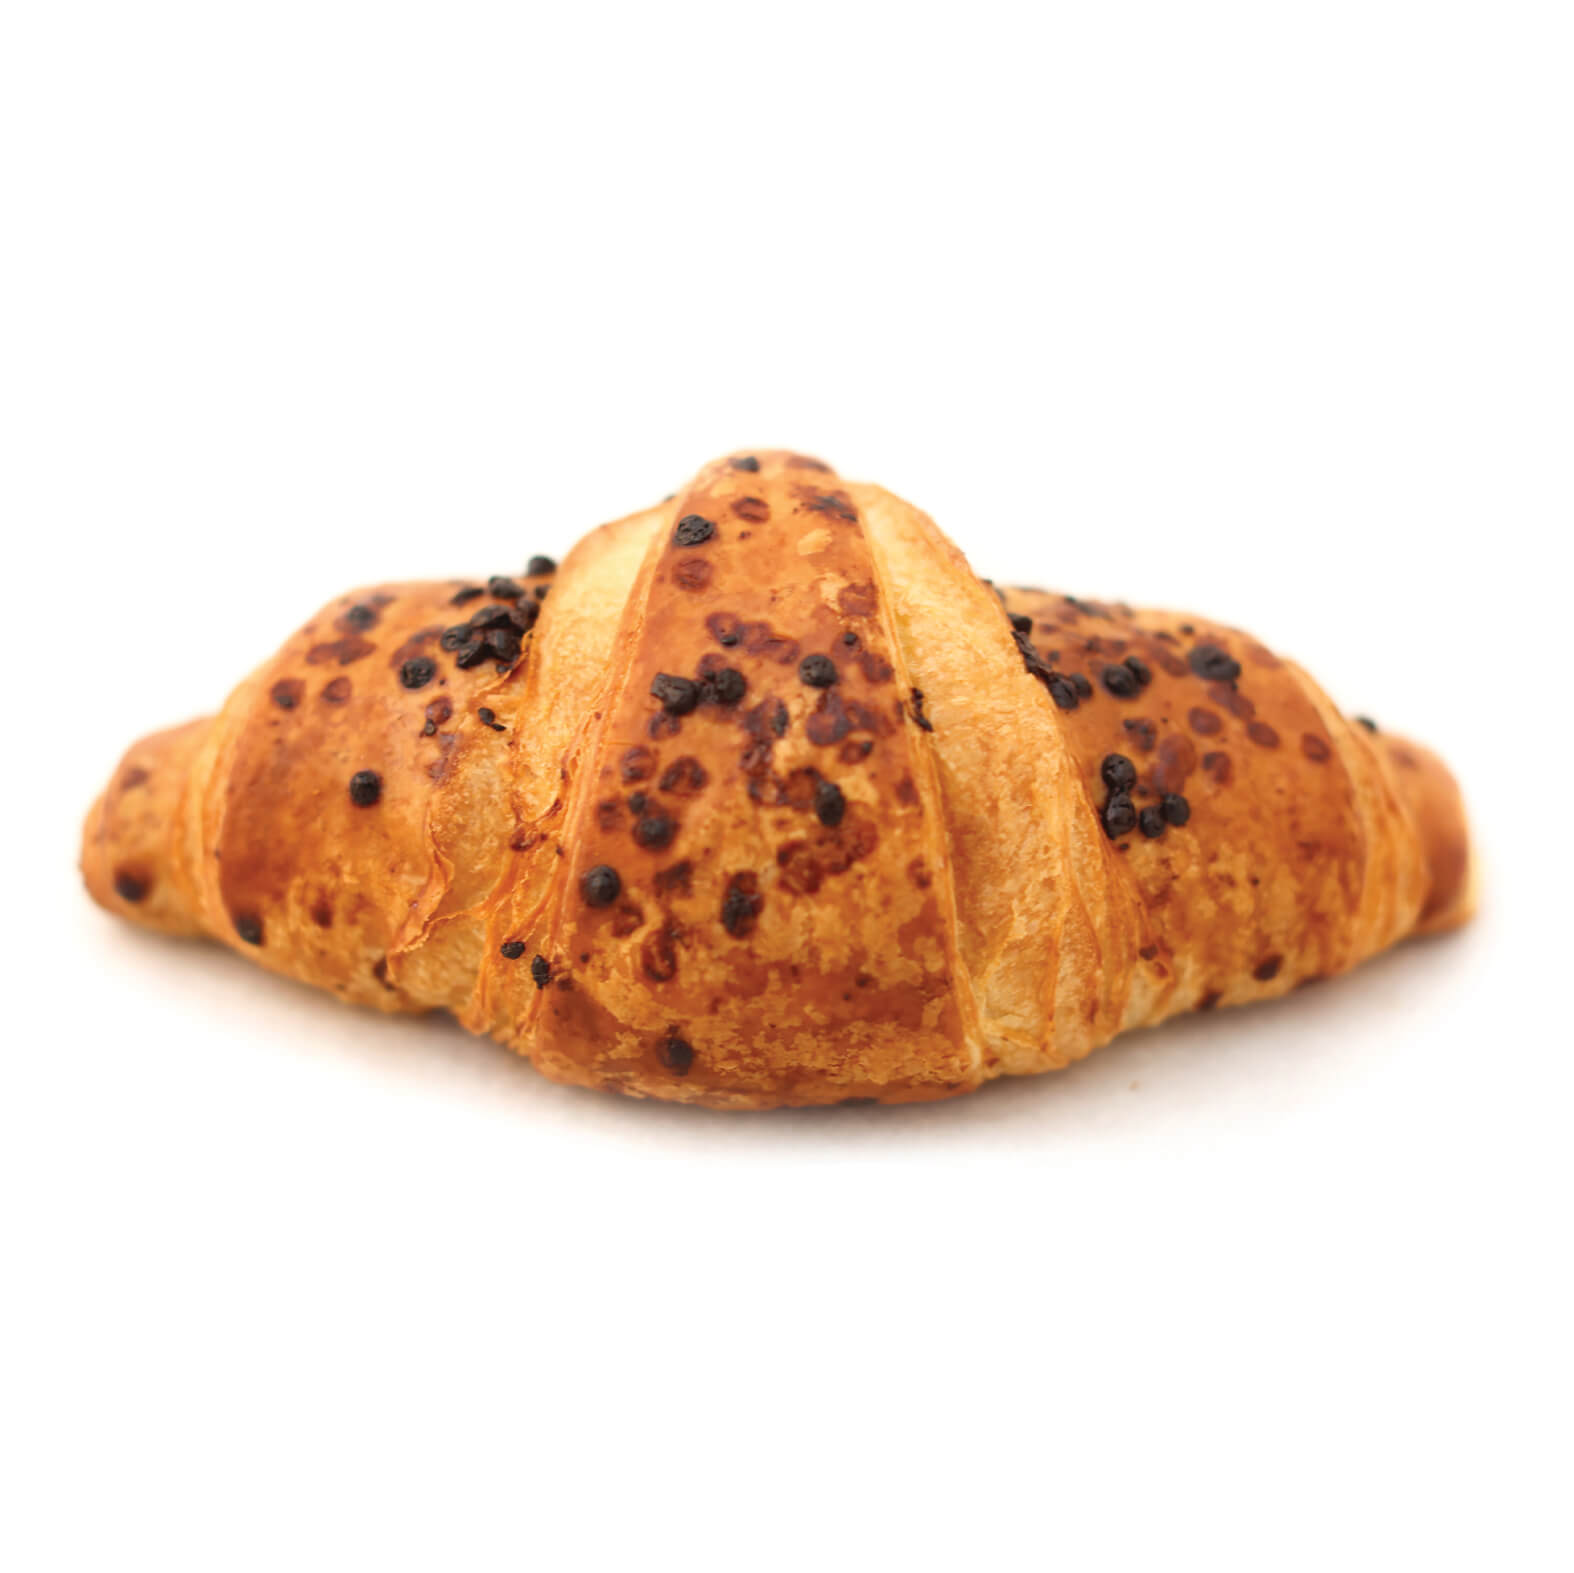 Butter croissant with praline filling